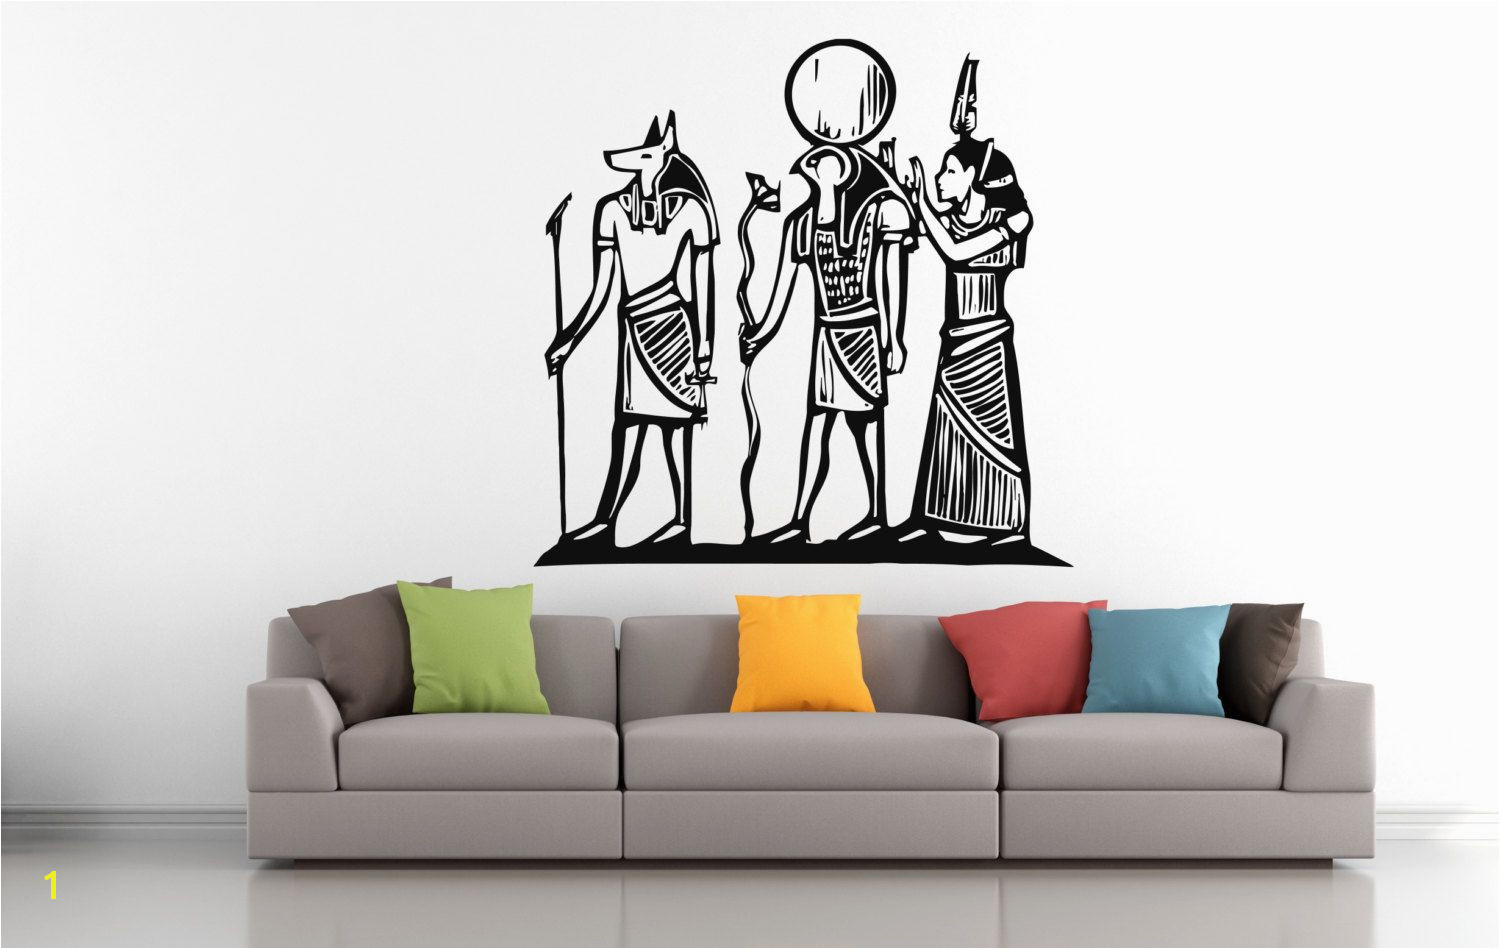 Wall Vinyl Sticker Decals Mural Room Design Pattern Art Bedroom Egypt God Anubis Ra Hathor Ancient Culture bo2497 by RoomDecalsAndDesigns on Etsy